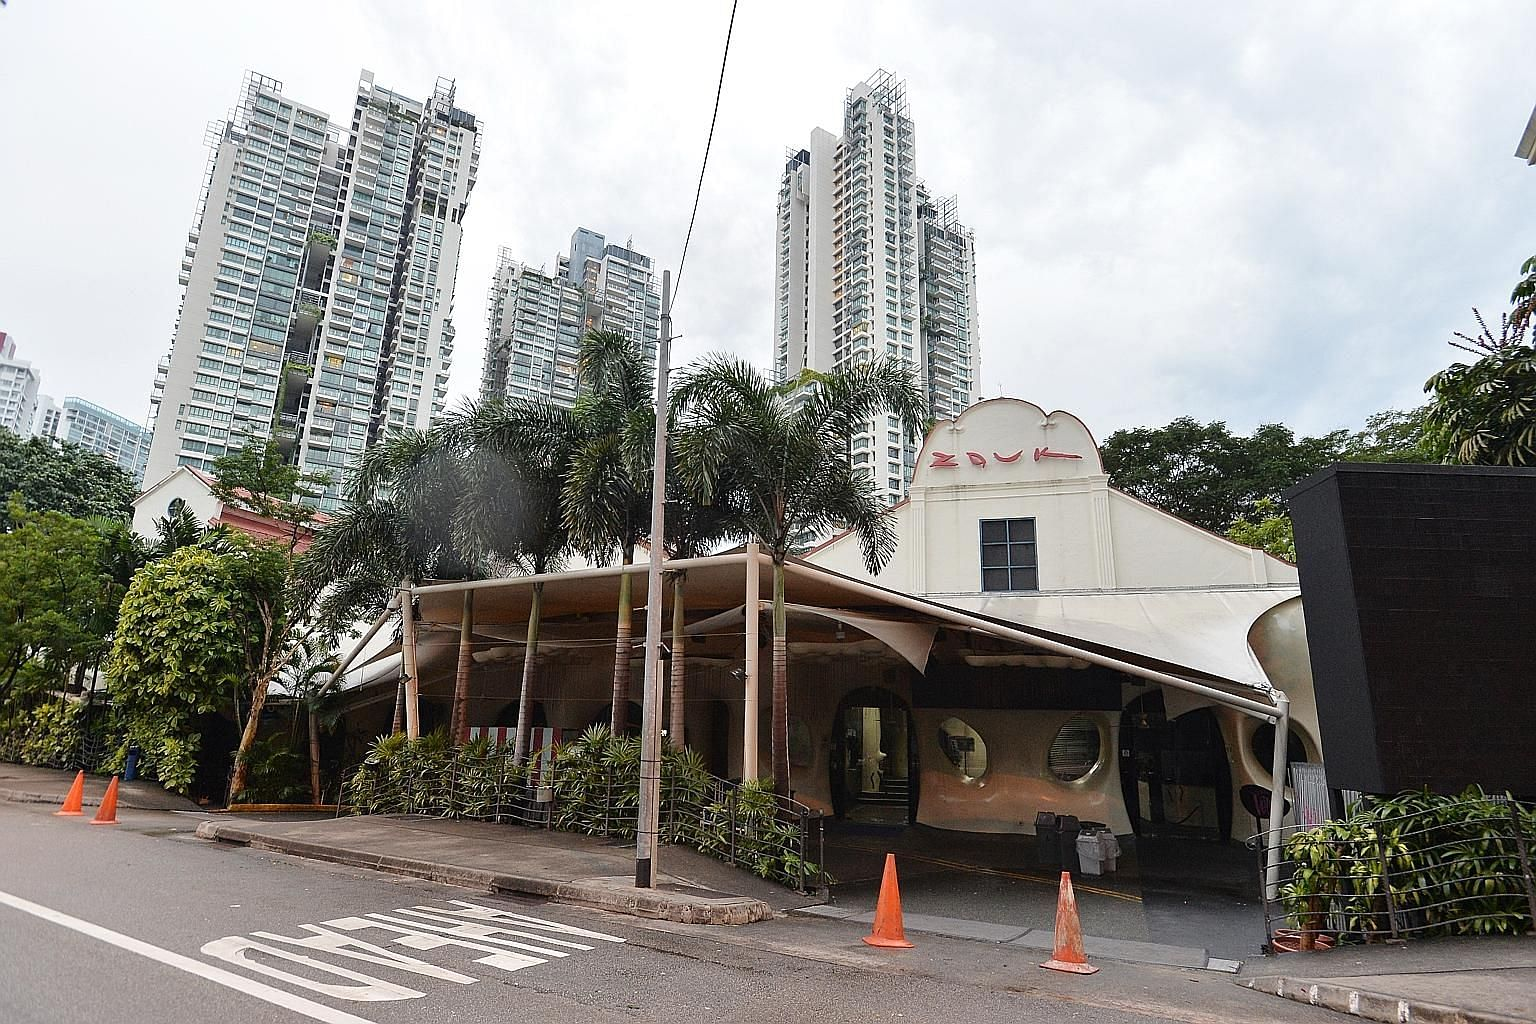 The Jiak Kim site was placed on the reserve list in June and triggered for sale after a developer committed to bid at least $689.4 million.